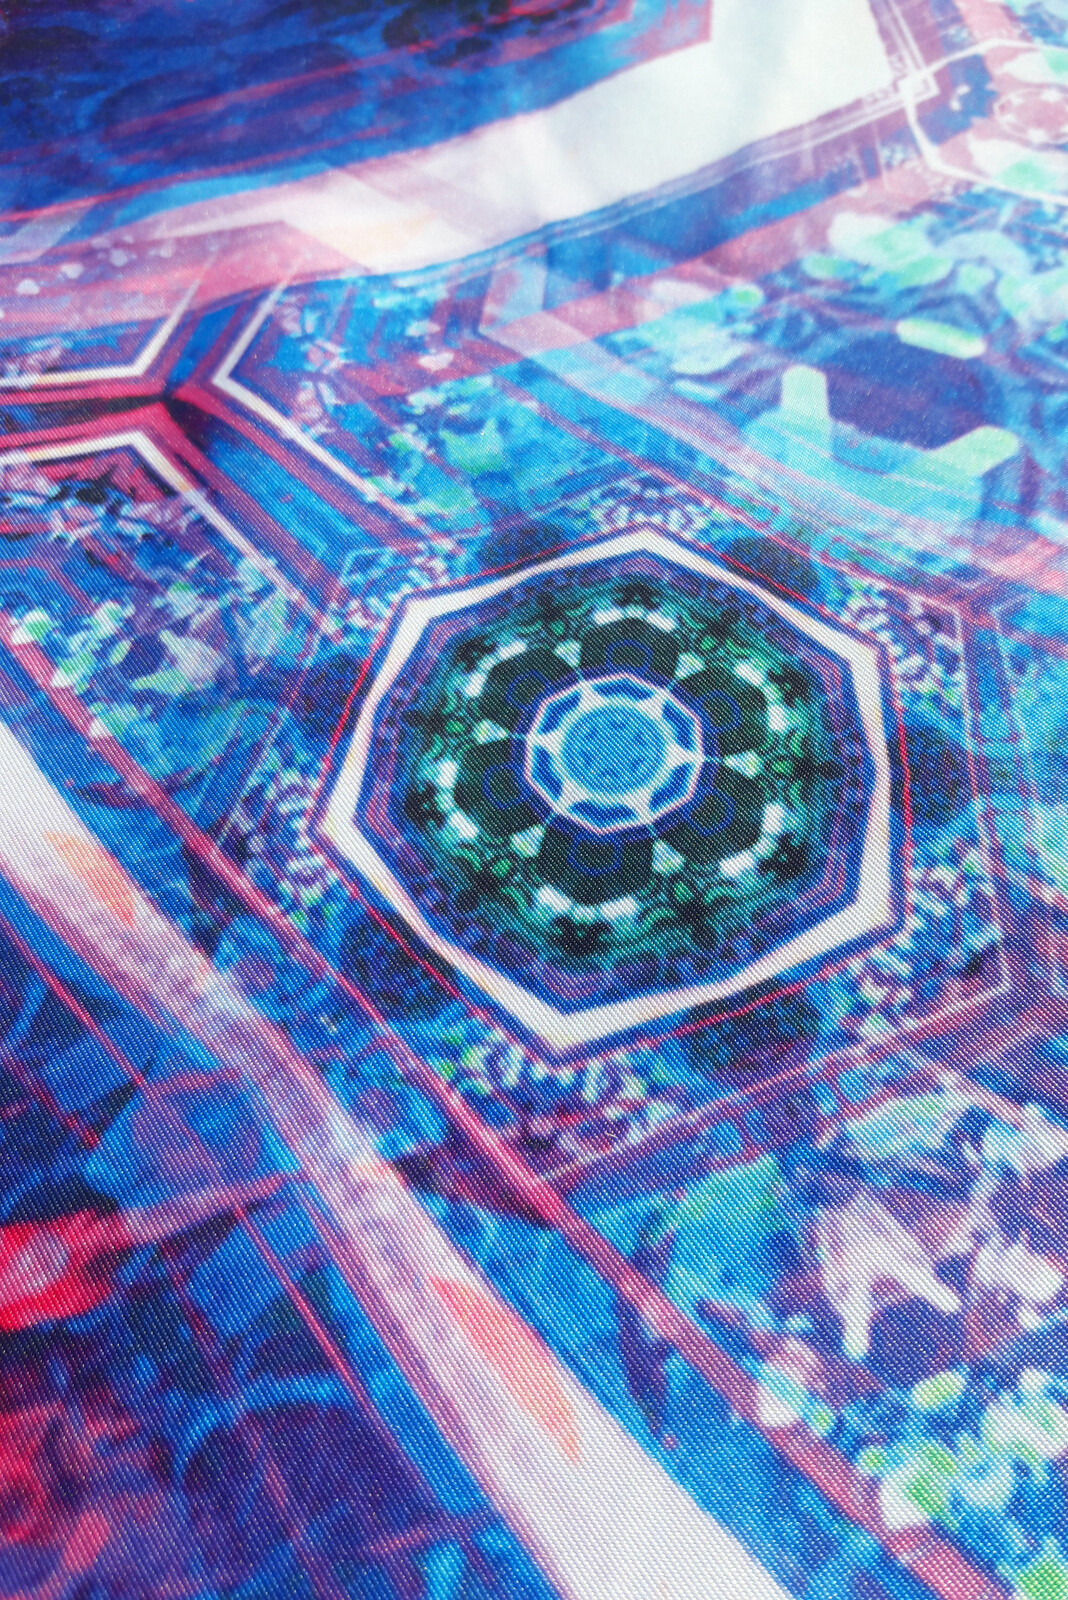 High Quality Tapestry Print Detail Shot  https://warp-store.myshopify.com/collections/tapestries/products/oath-of-the-jewel-box-blue-tapestry